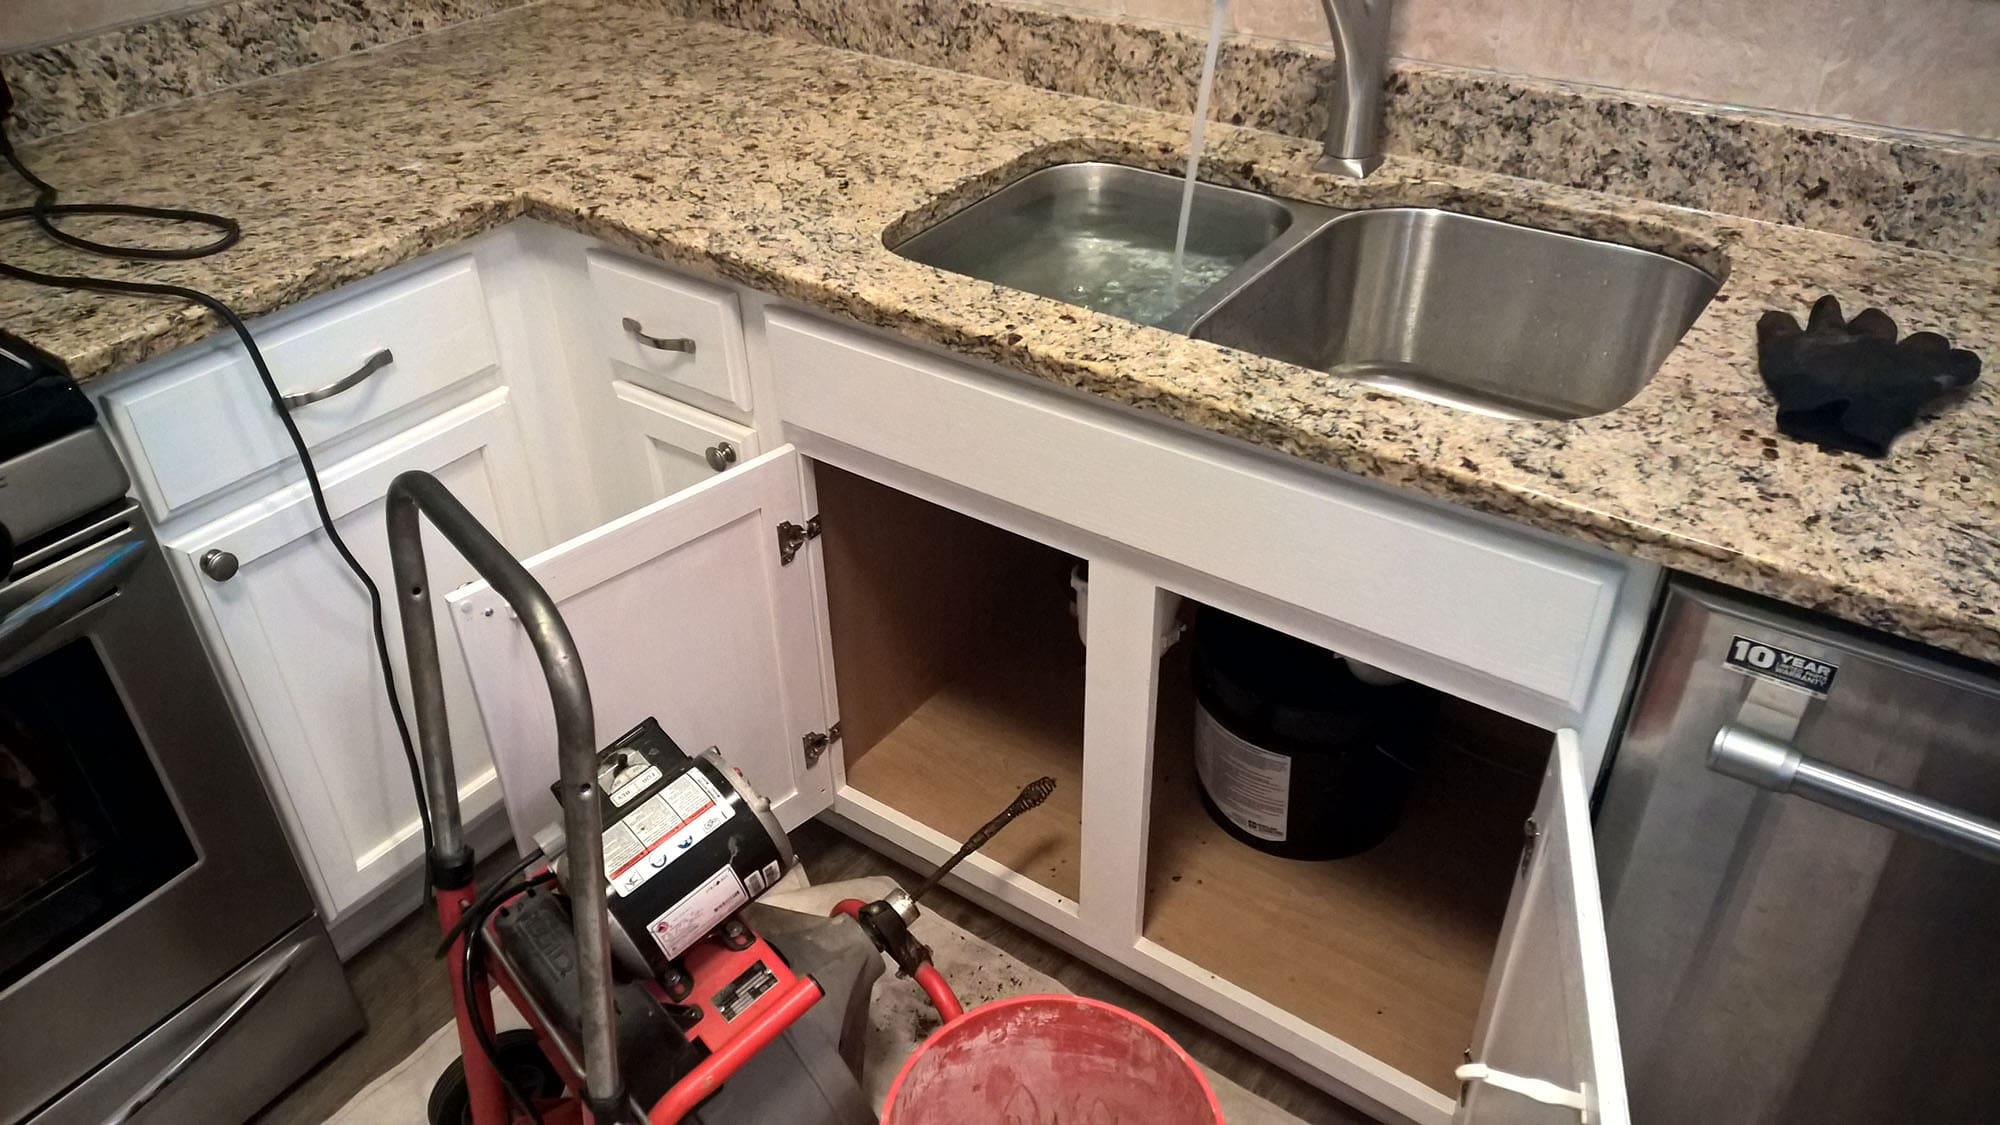 Leaky Faucet Mokena IL - Sink & Faucet Installation Plumber - RW Dowding Plumbing